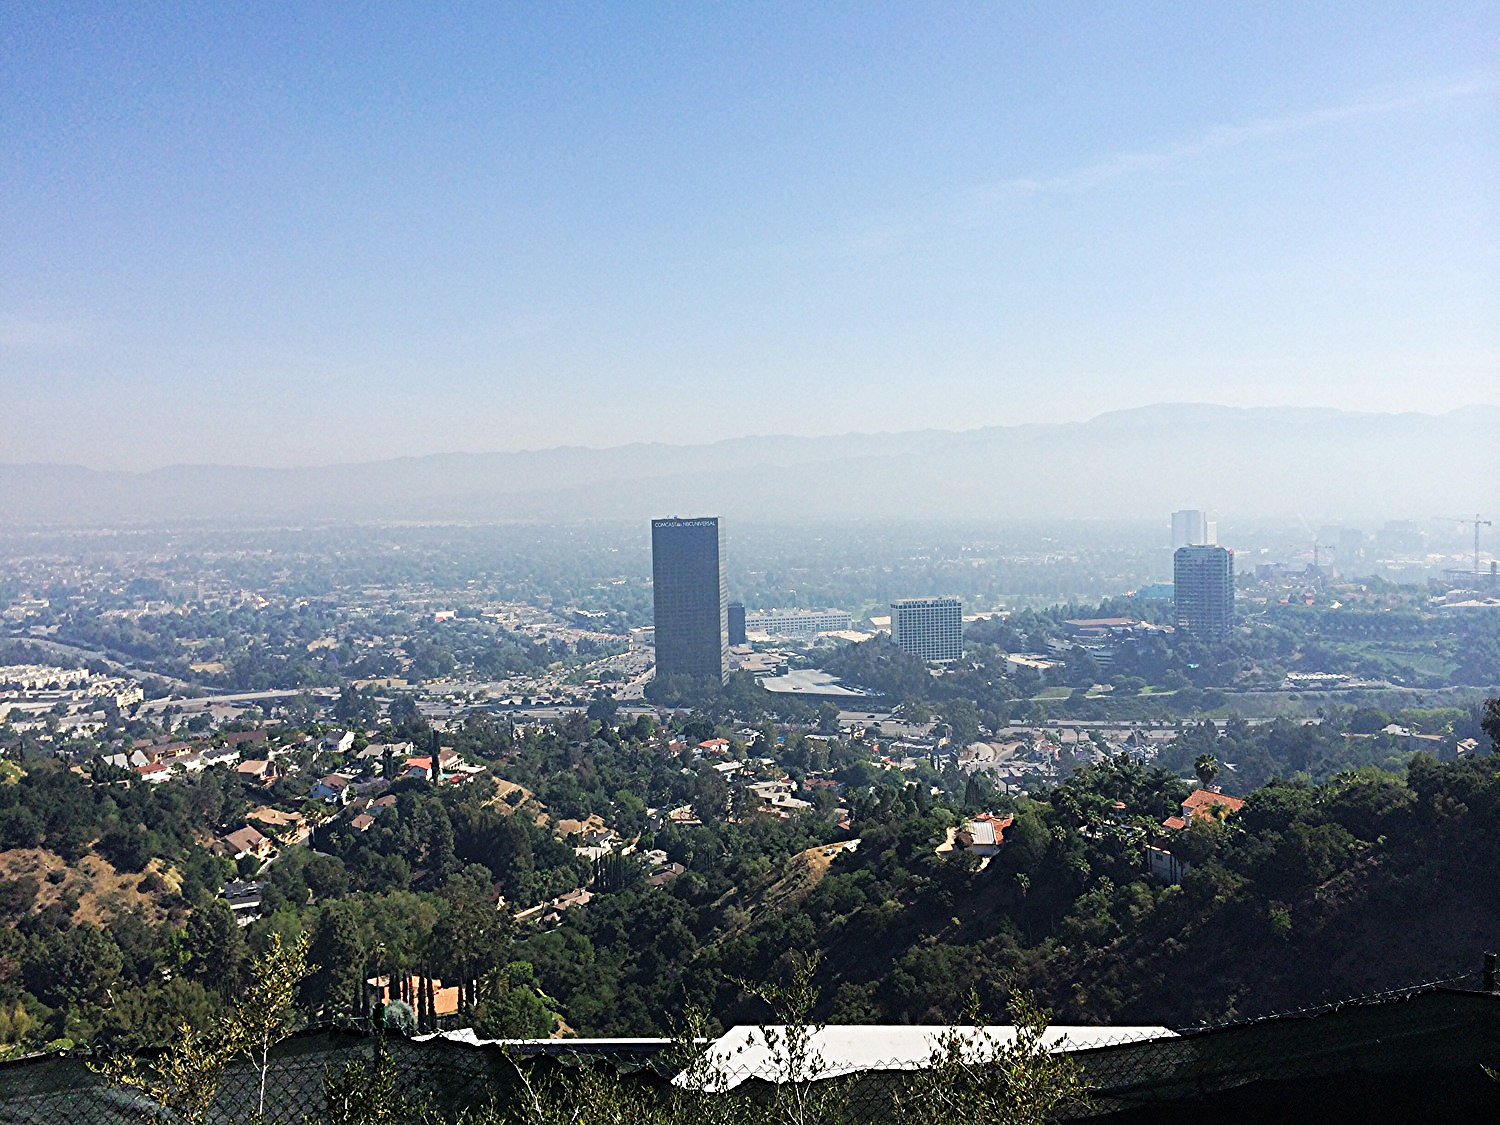 On Mulholland Drive above Universal City.